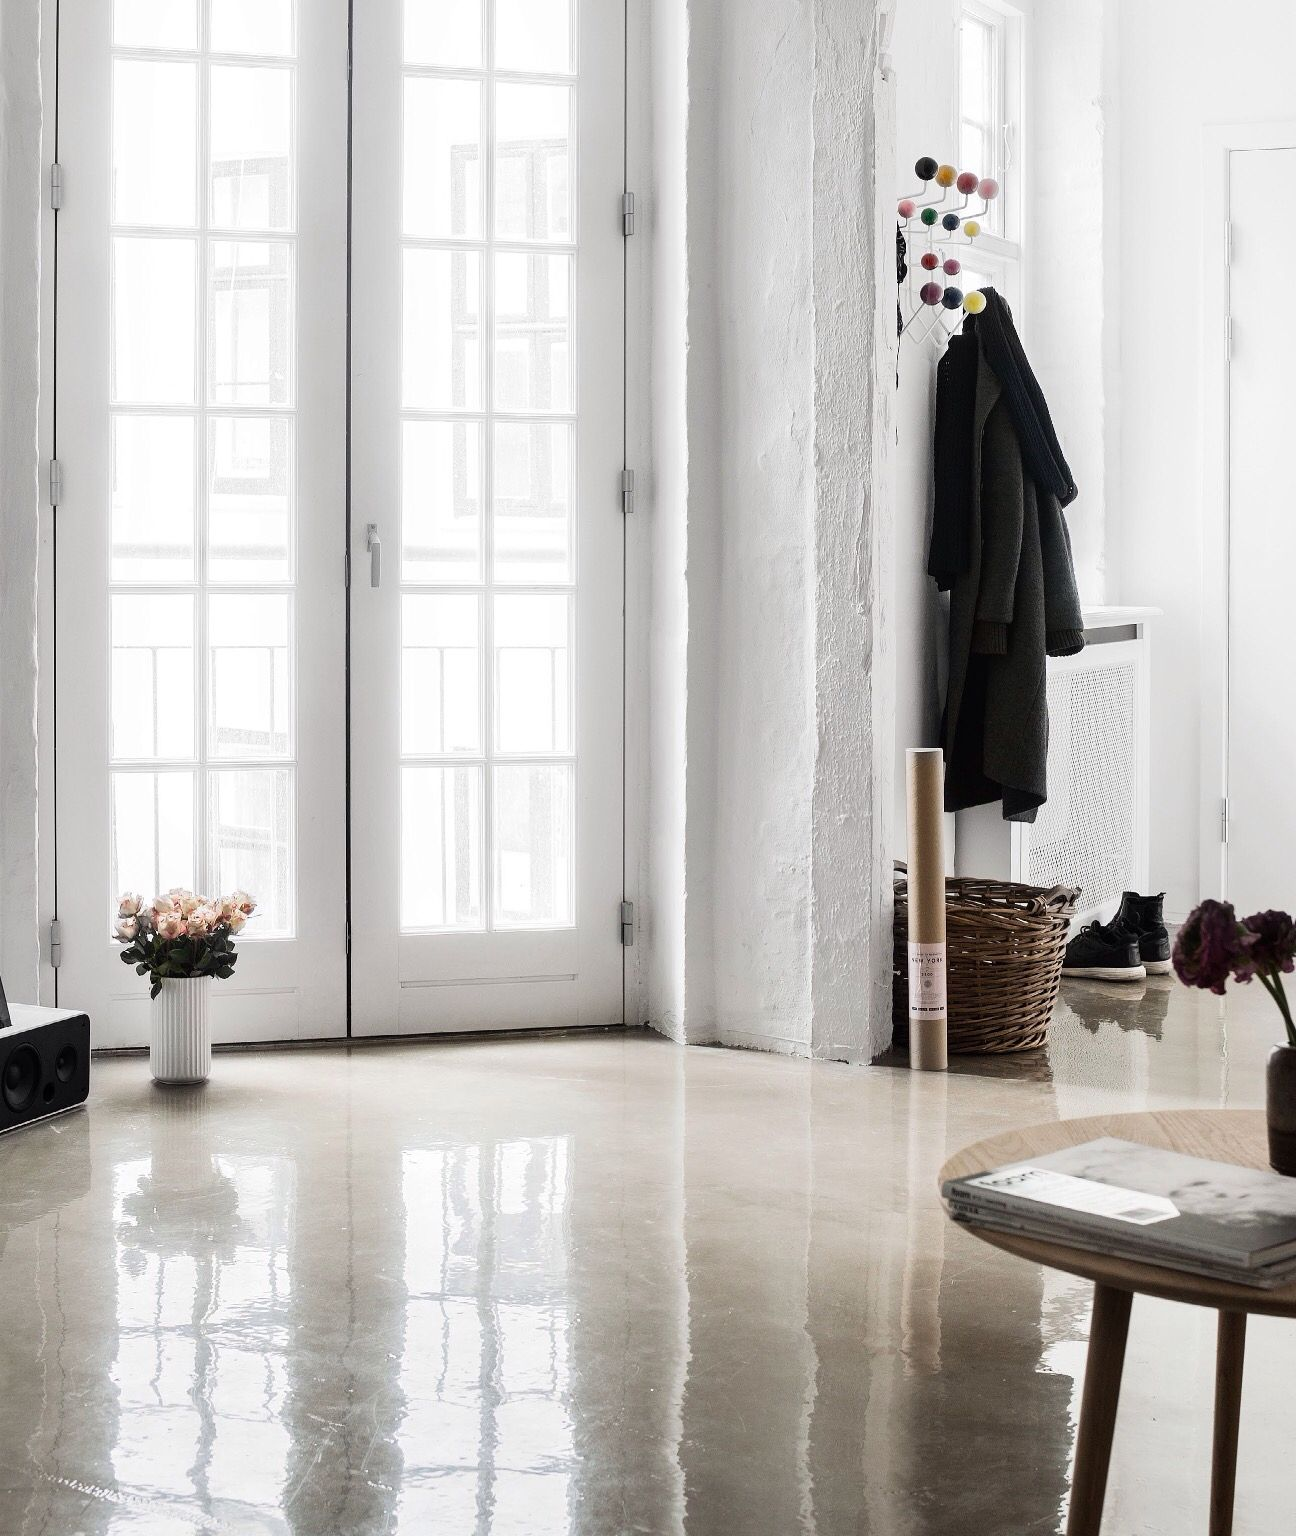 Poured Floors Elle Decoration Uk My Ideal Home Minimalism